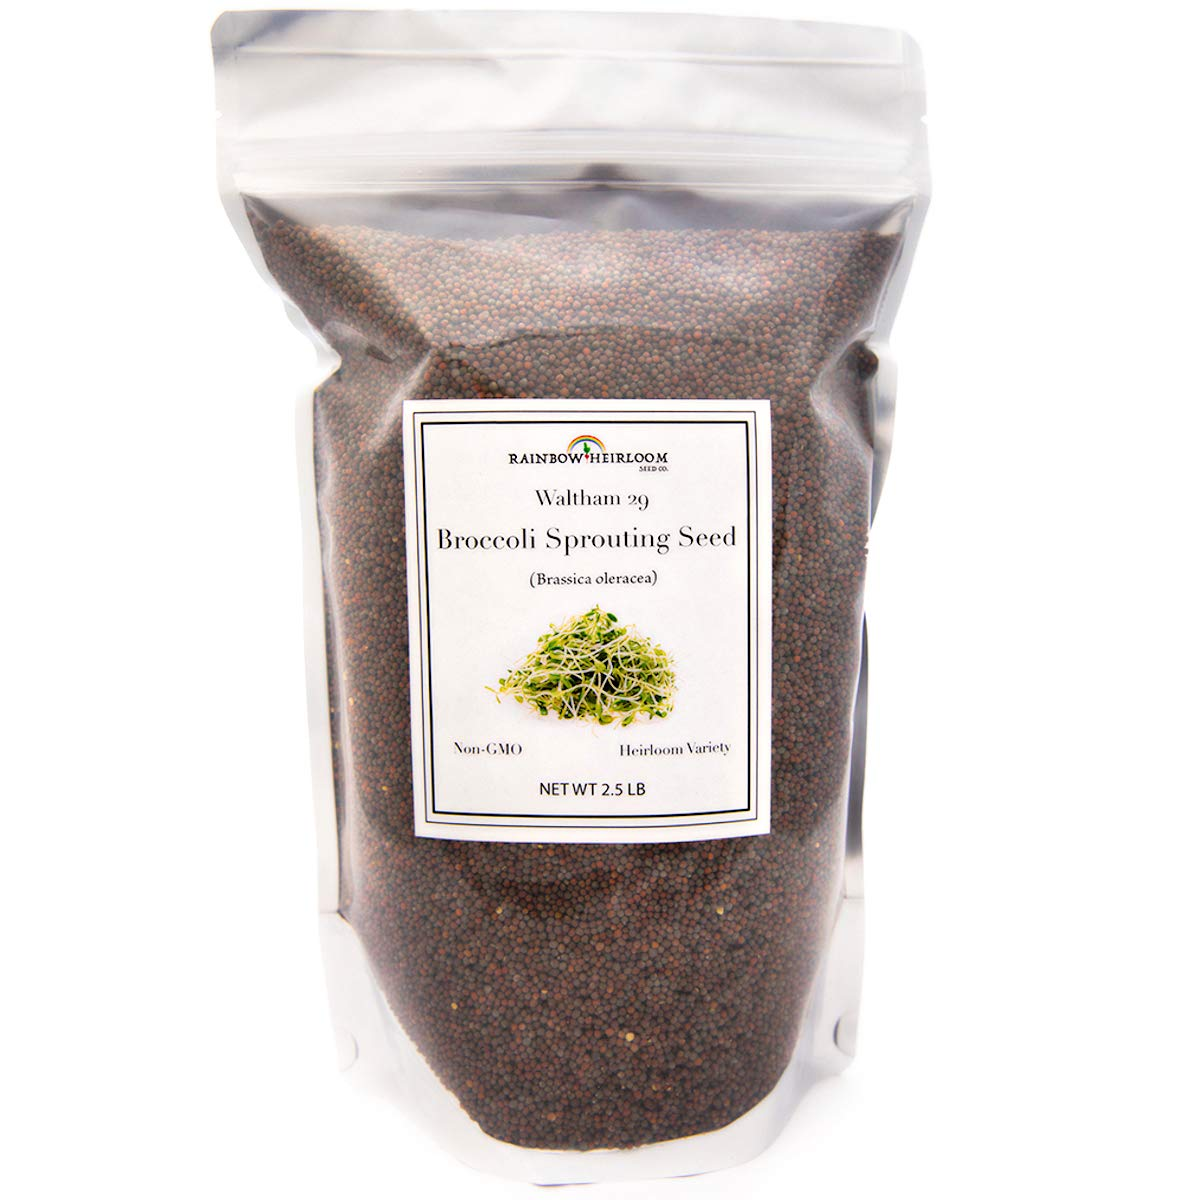 Broccoli Sprouting Seeds for Broccoli Sprouts & Microgreens | Waltham 29 Variety | Non GMO Heirloom Seeds | 2.5 LB Resealable Bag | Perfect for Sprouting Jar & Seed Tray | Rainbow Heirloom Seed Co.